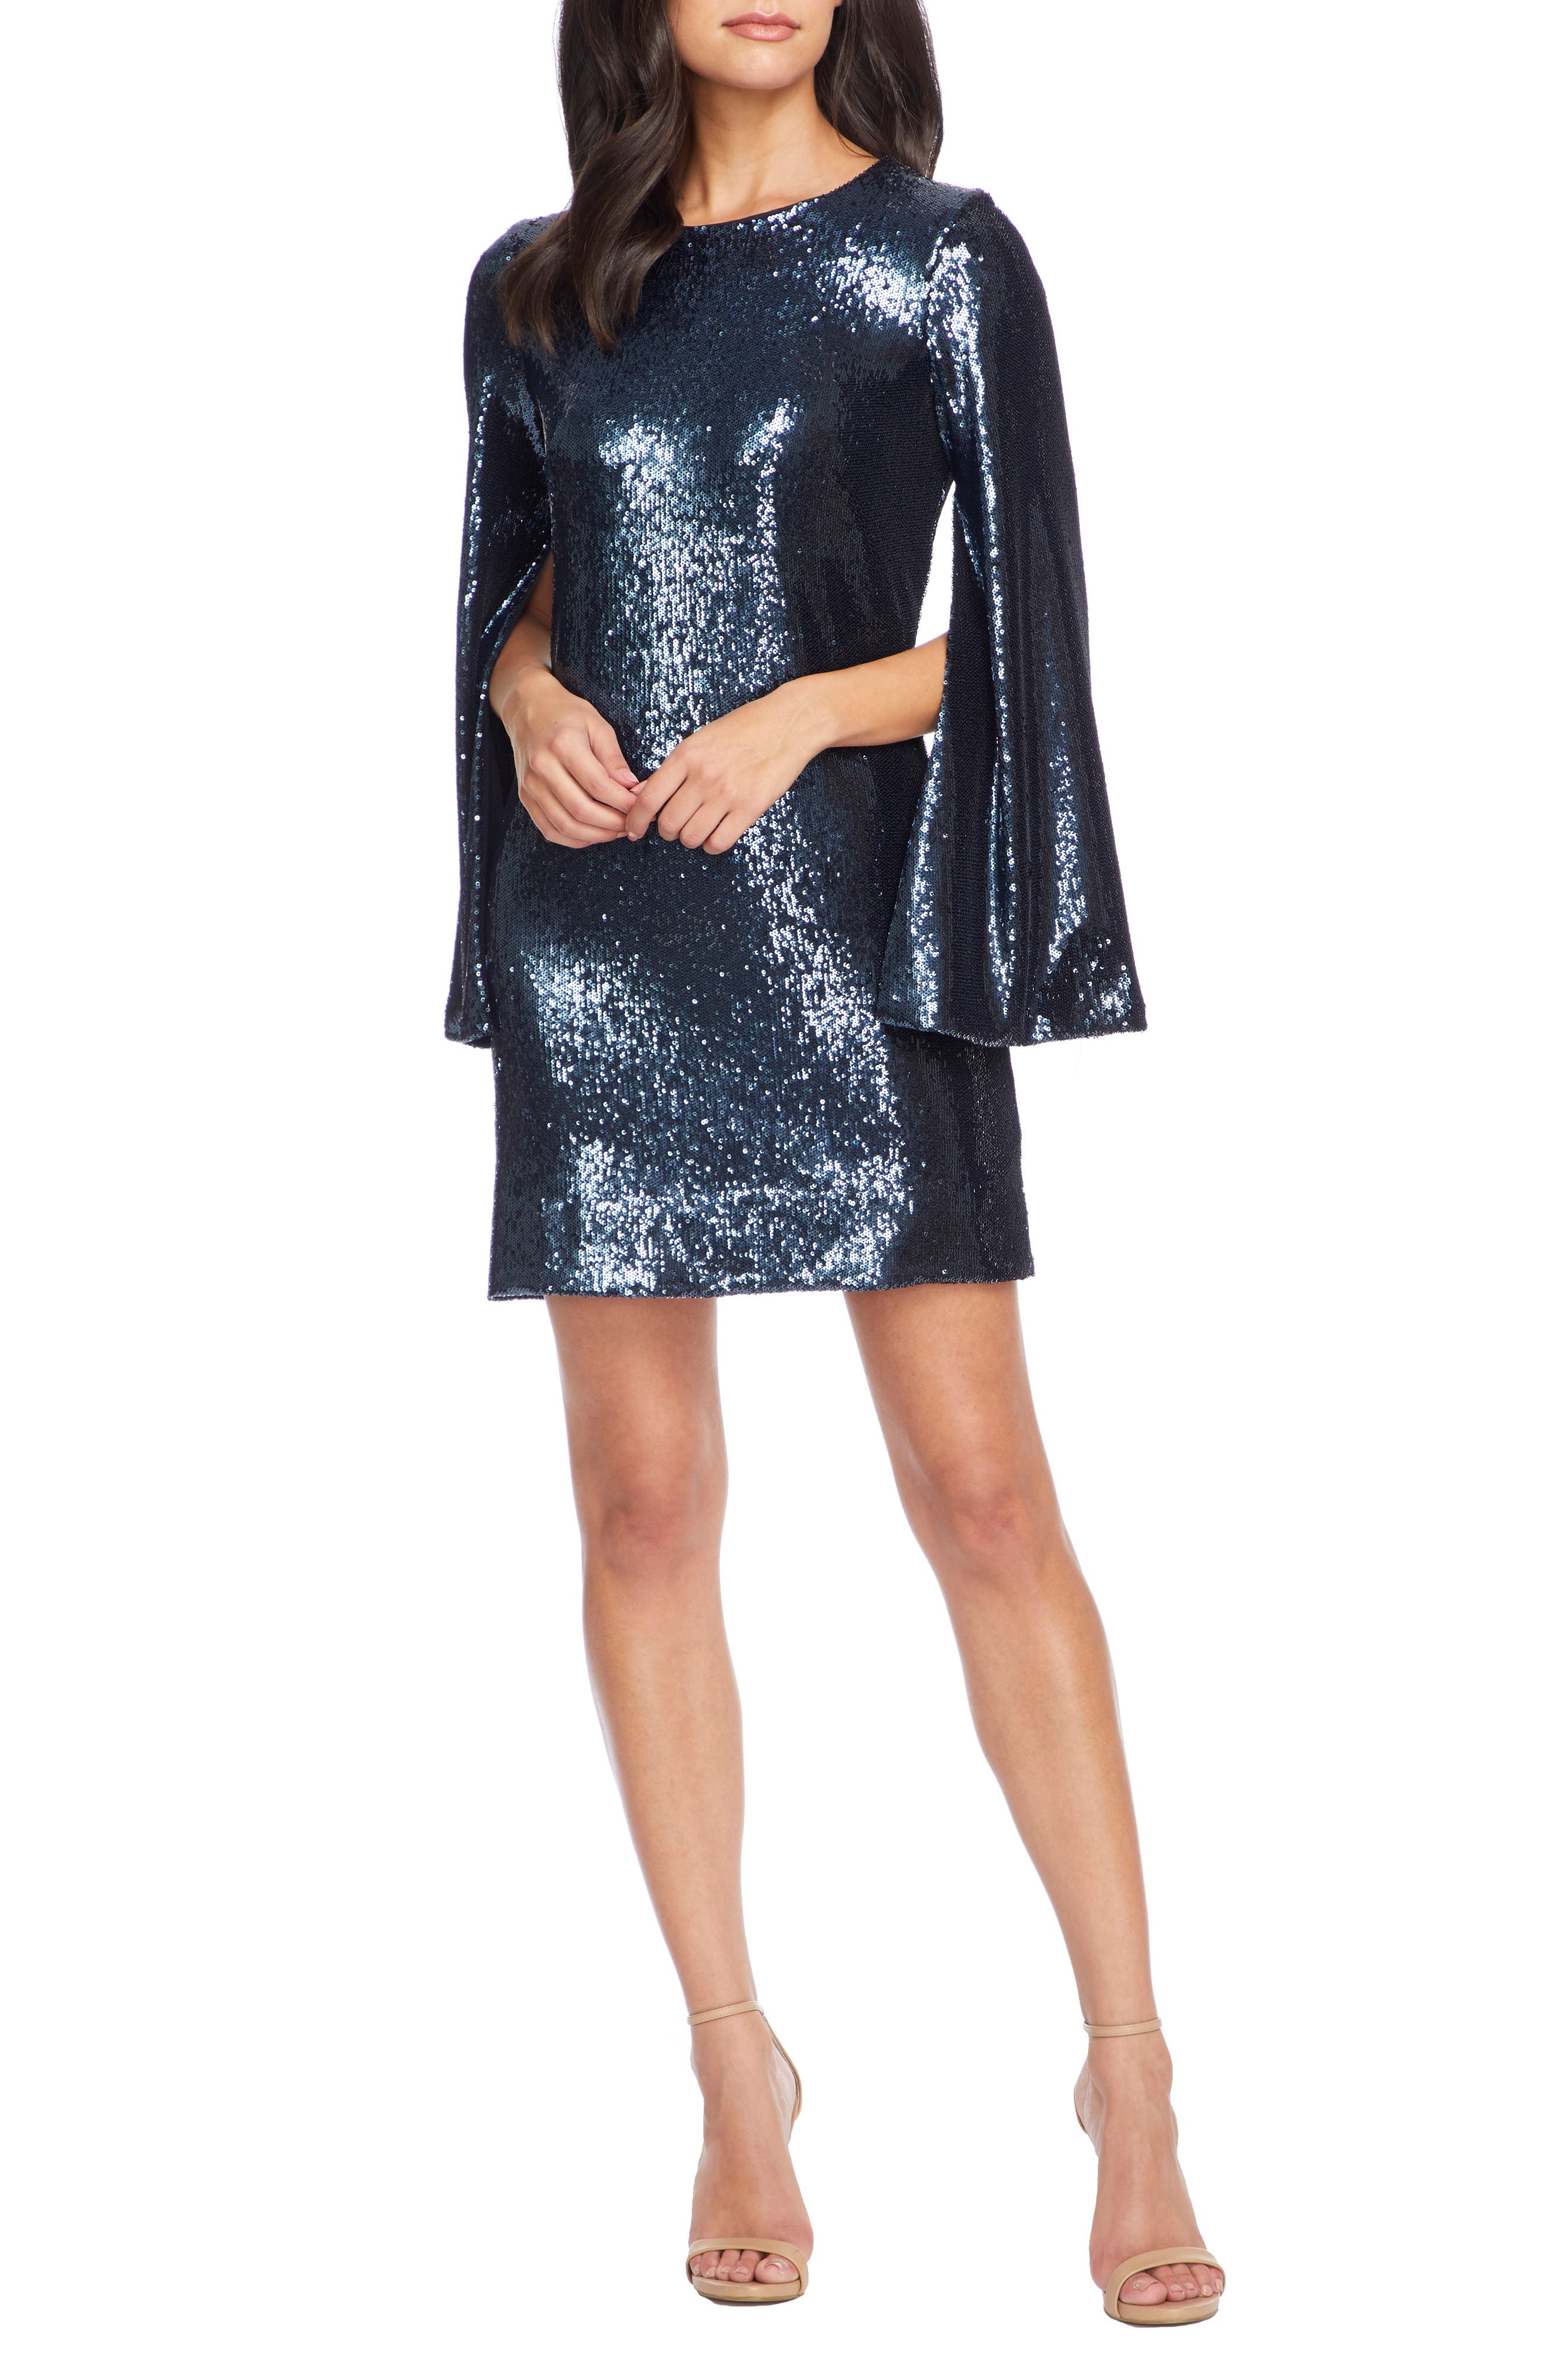 70s Prom, Formal, Evening, Party Dresses Womens Dress The Population Liza Long Cape Sleeve Sequin Minidress Size Medium - Blue $248.00 AT vintagedancer.com